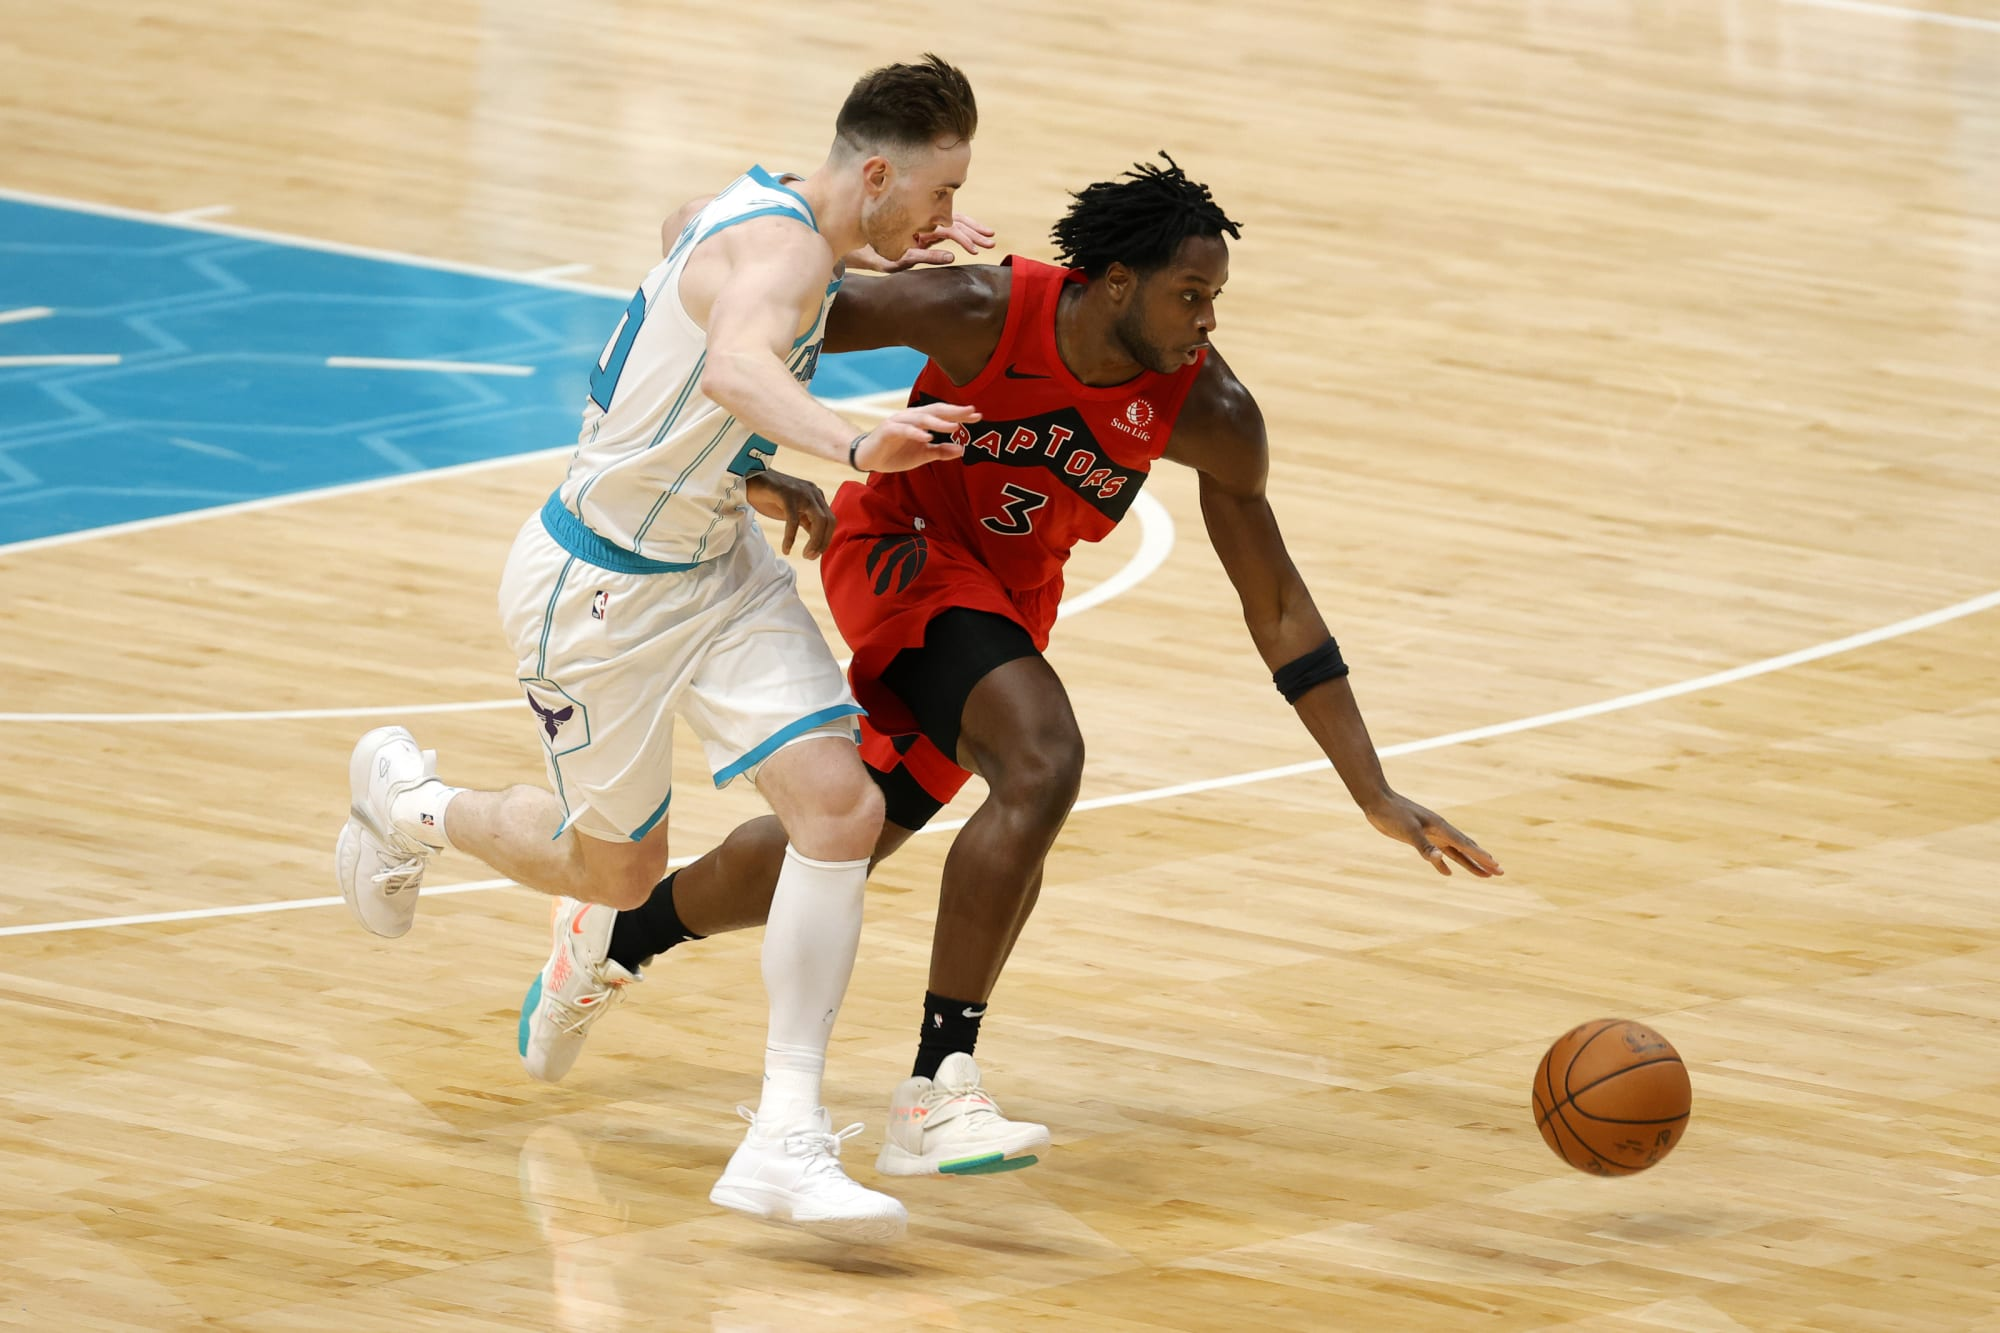 Three key takeaways from the Toronto Raptors win against the Hornets